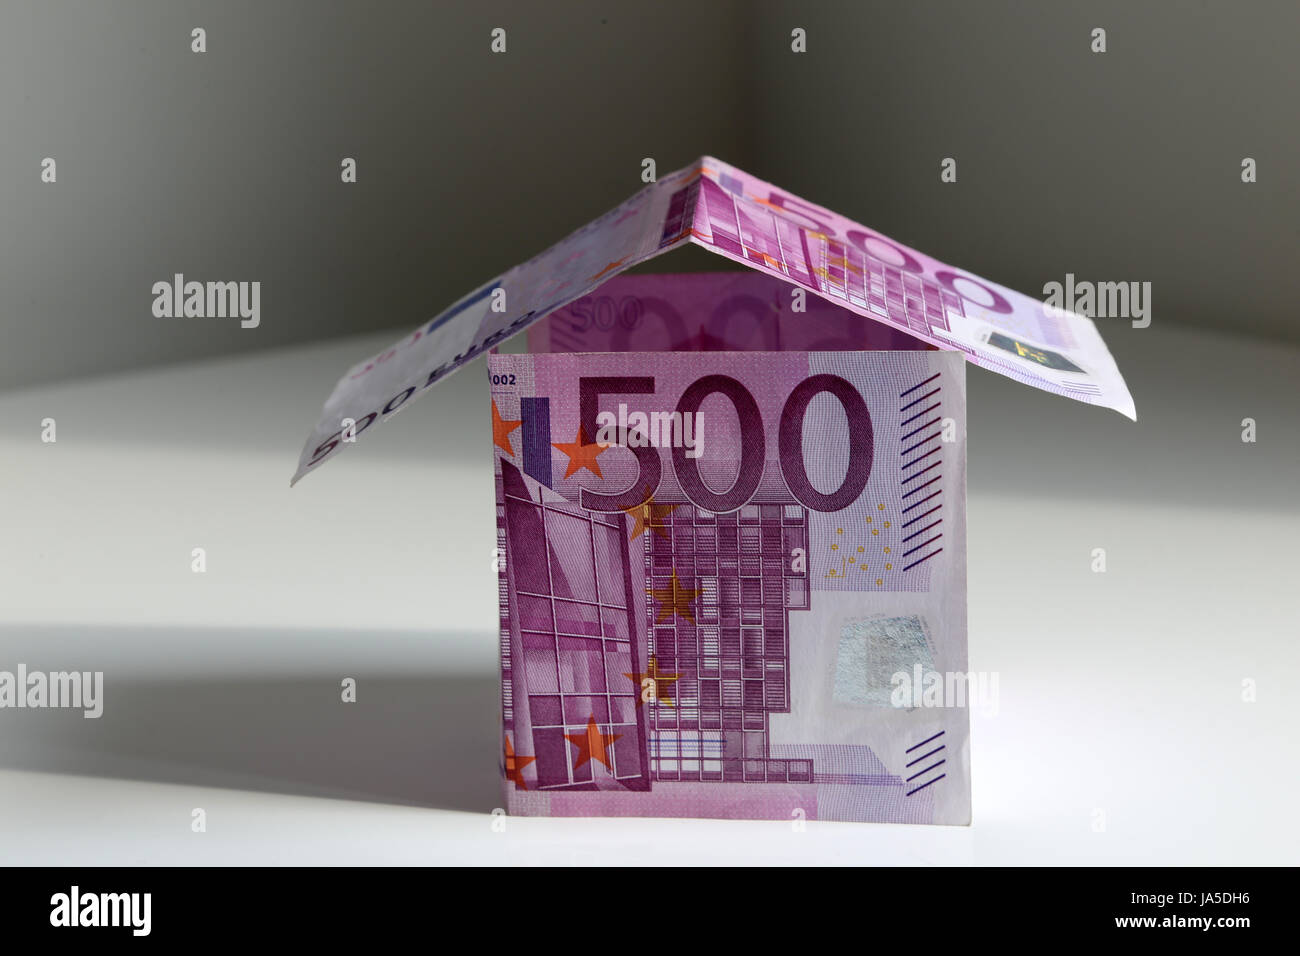 A house bulit from 500 Euro bills, symbol of building a house and paying mortgage Stock Photo